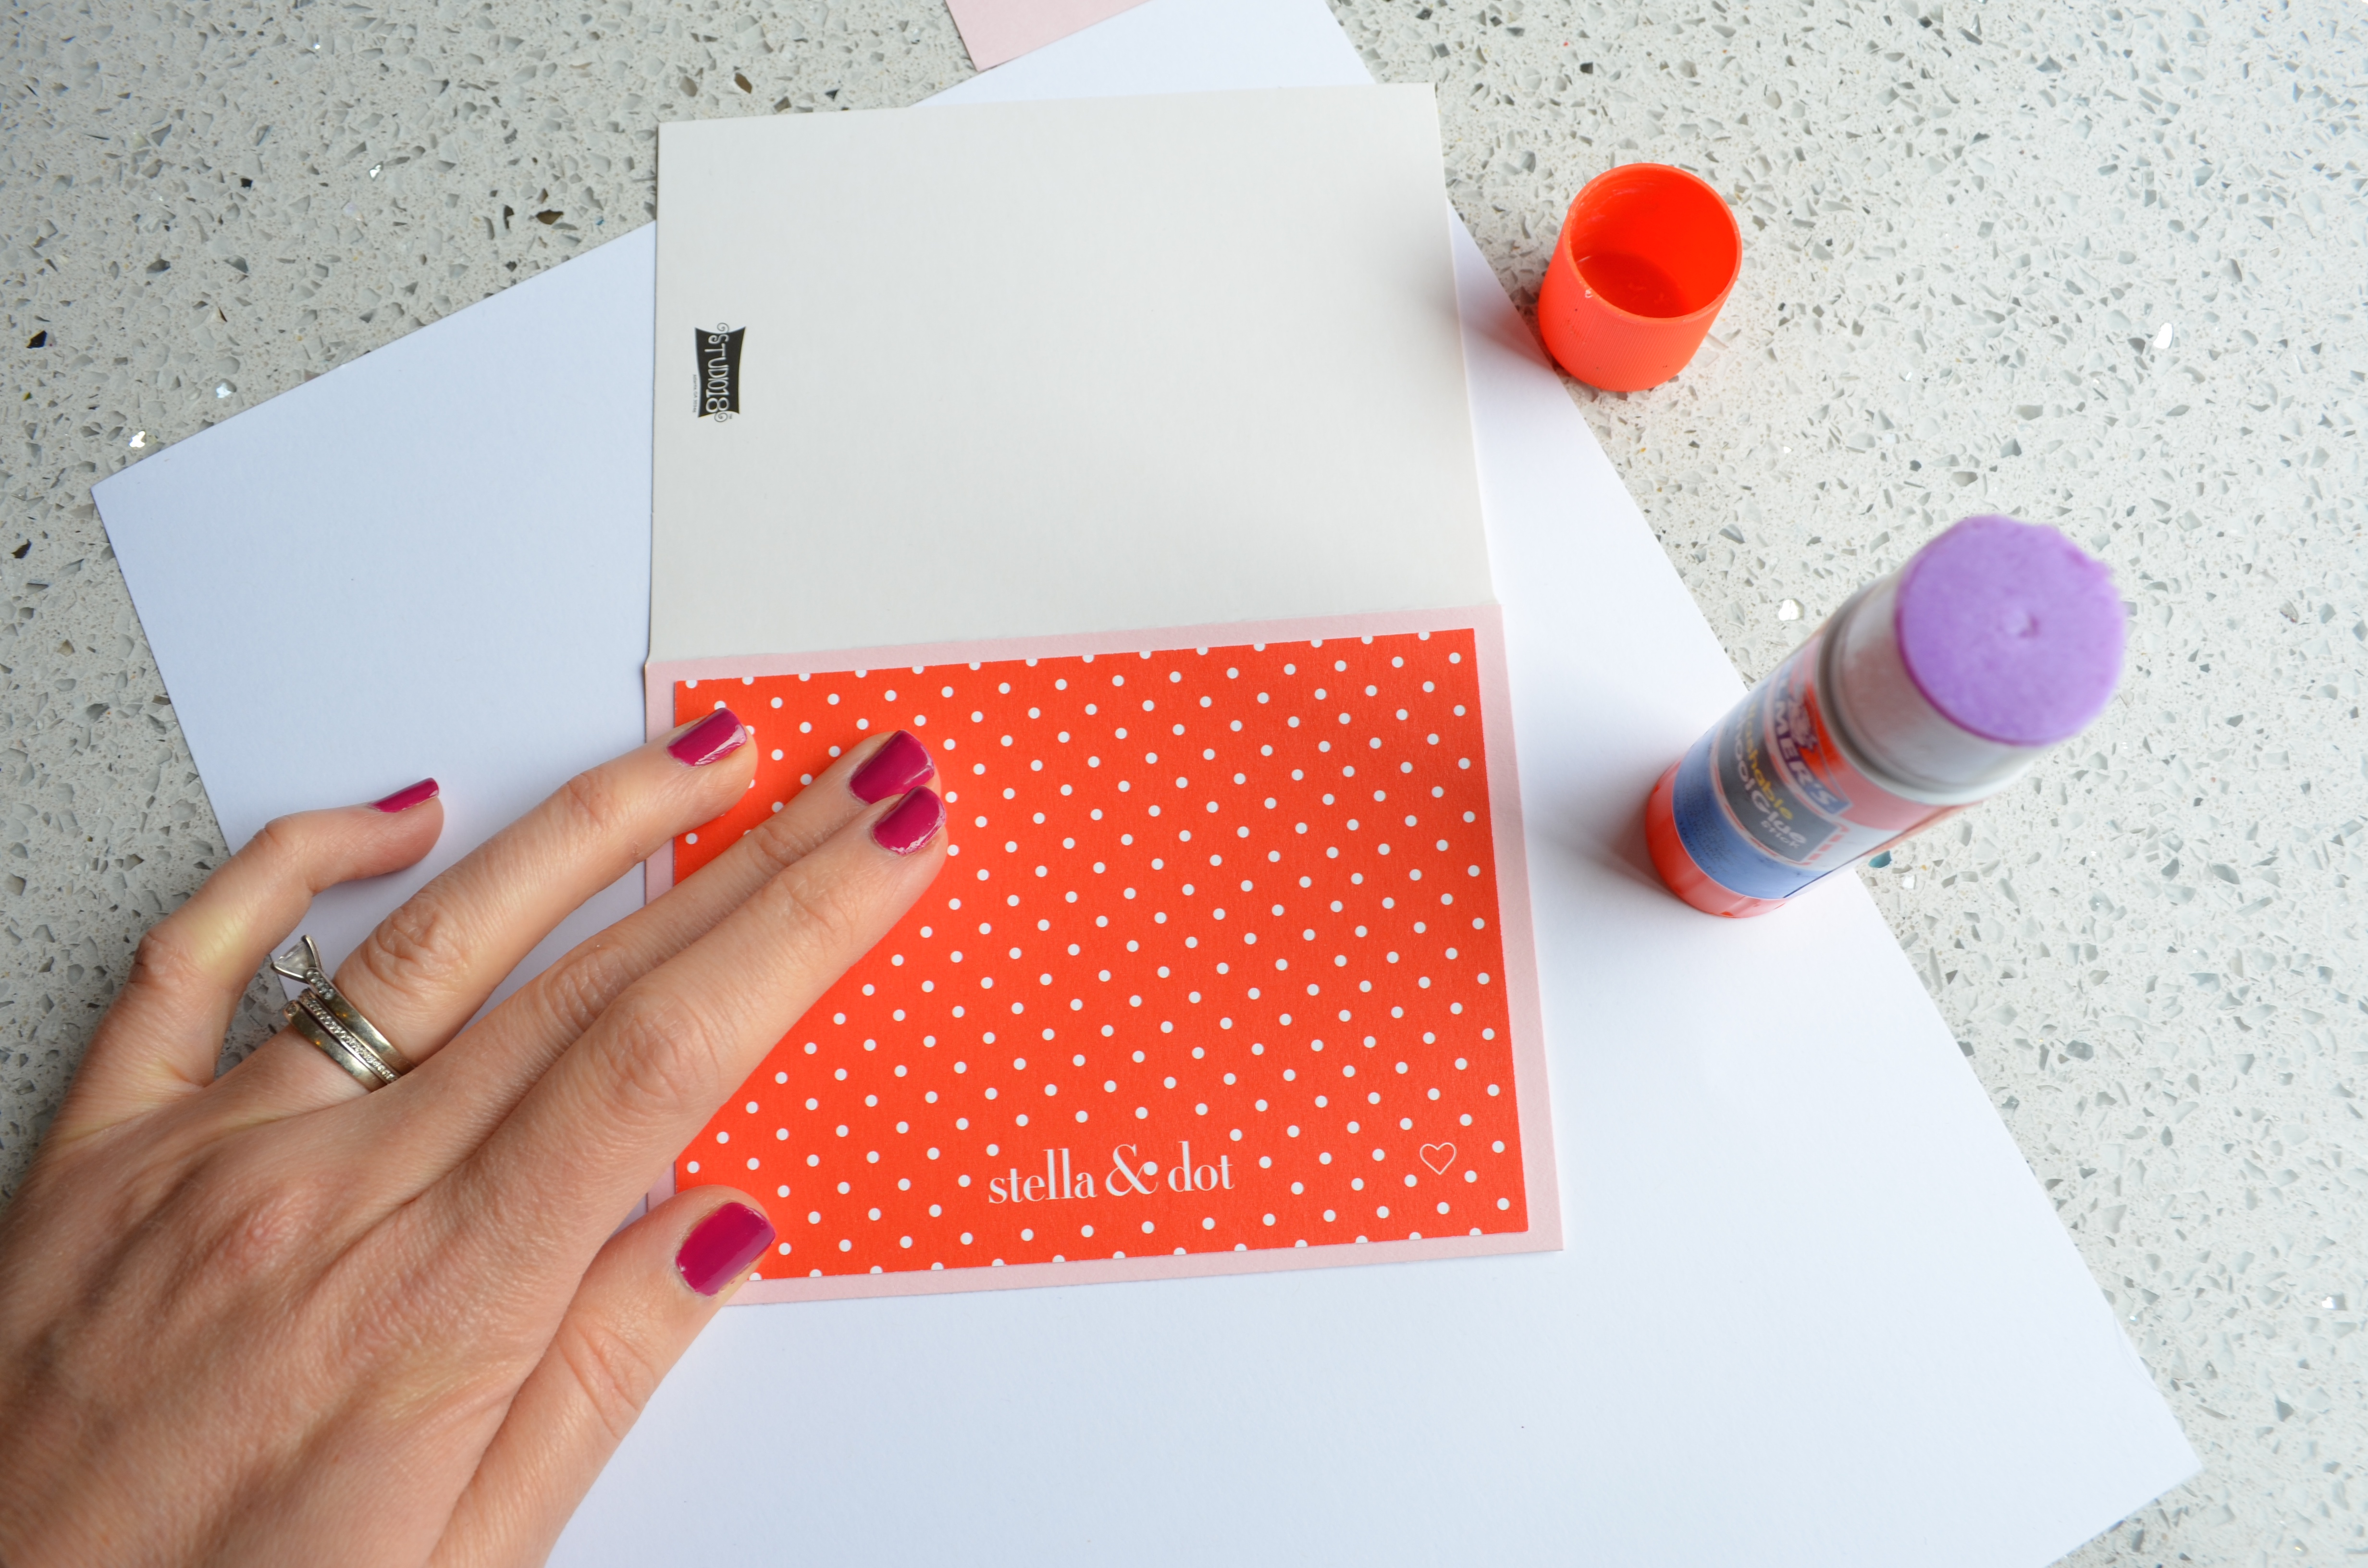 Stella and Dot Note Cards Easy DIY MyMommaToldMe.com